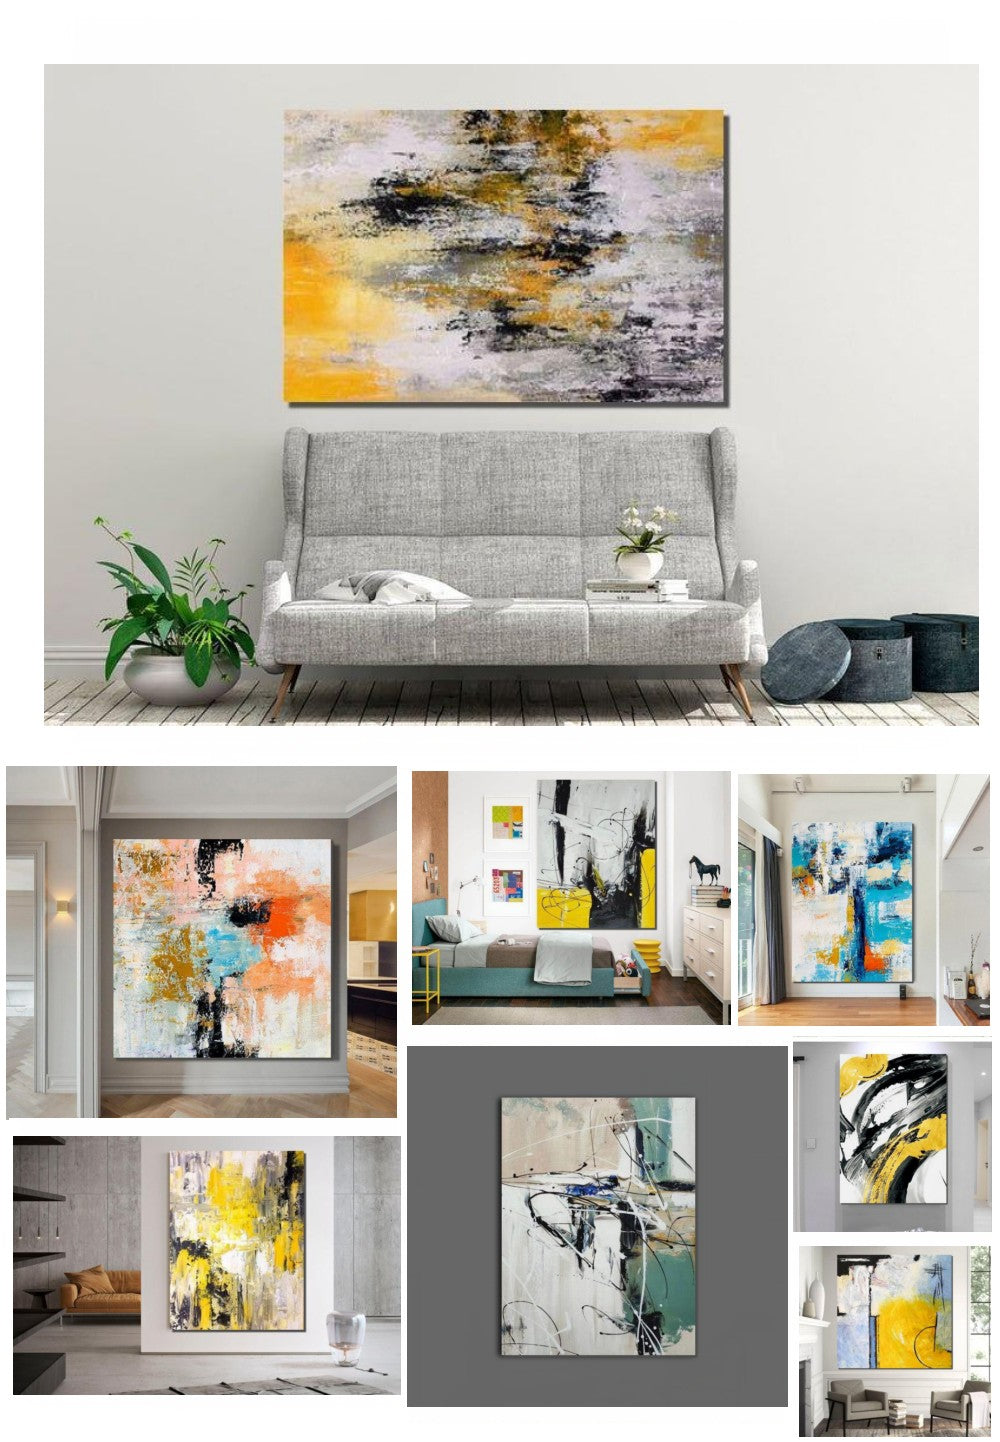 Easy Abstract Painting on Canvas, Original Hand Painted Abstract Paintings, Simple Acrylic Painting for Bedroom